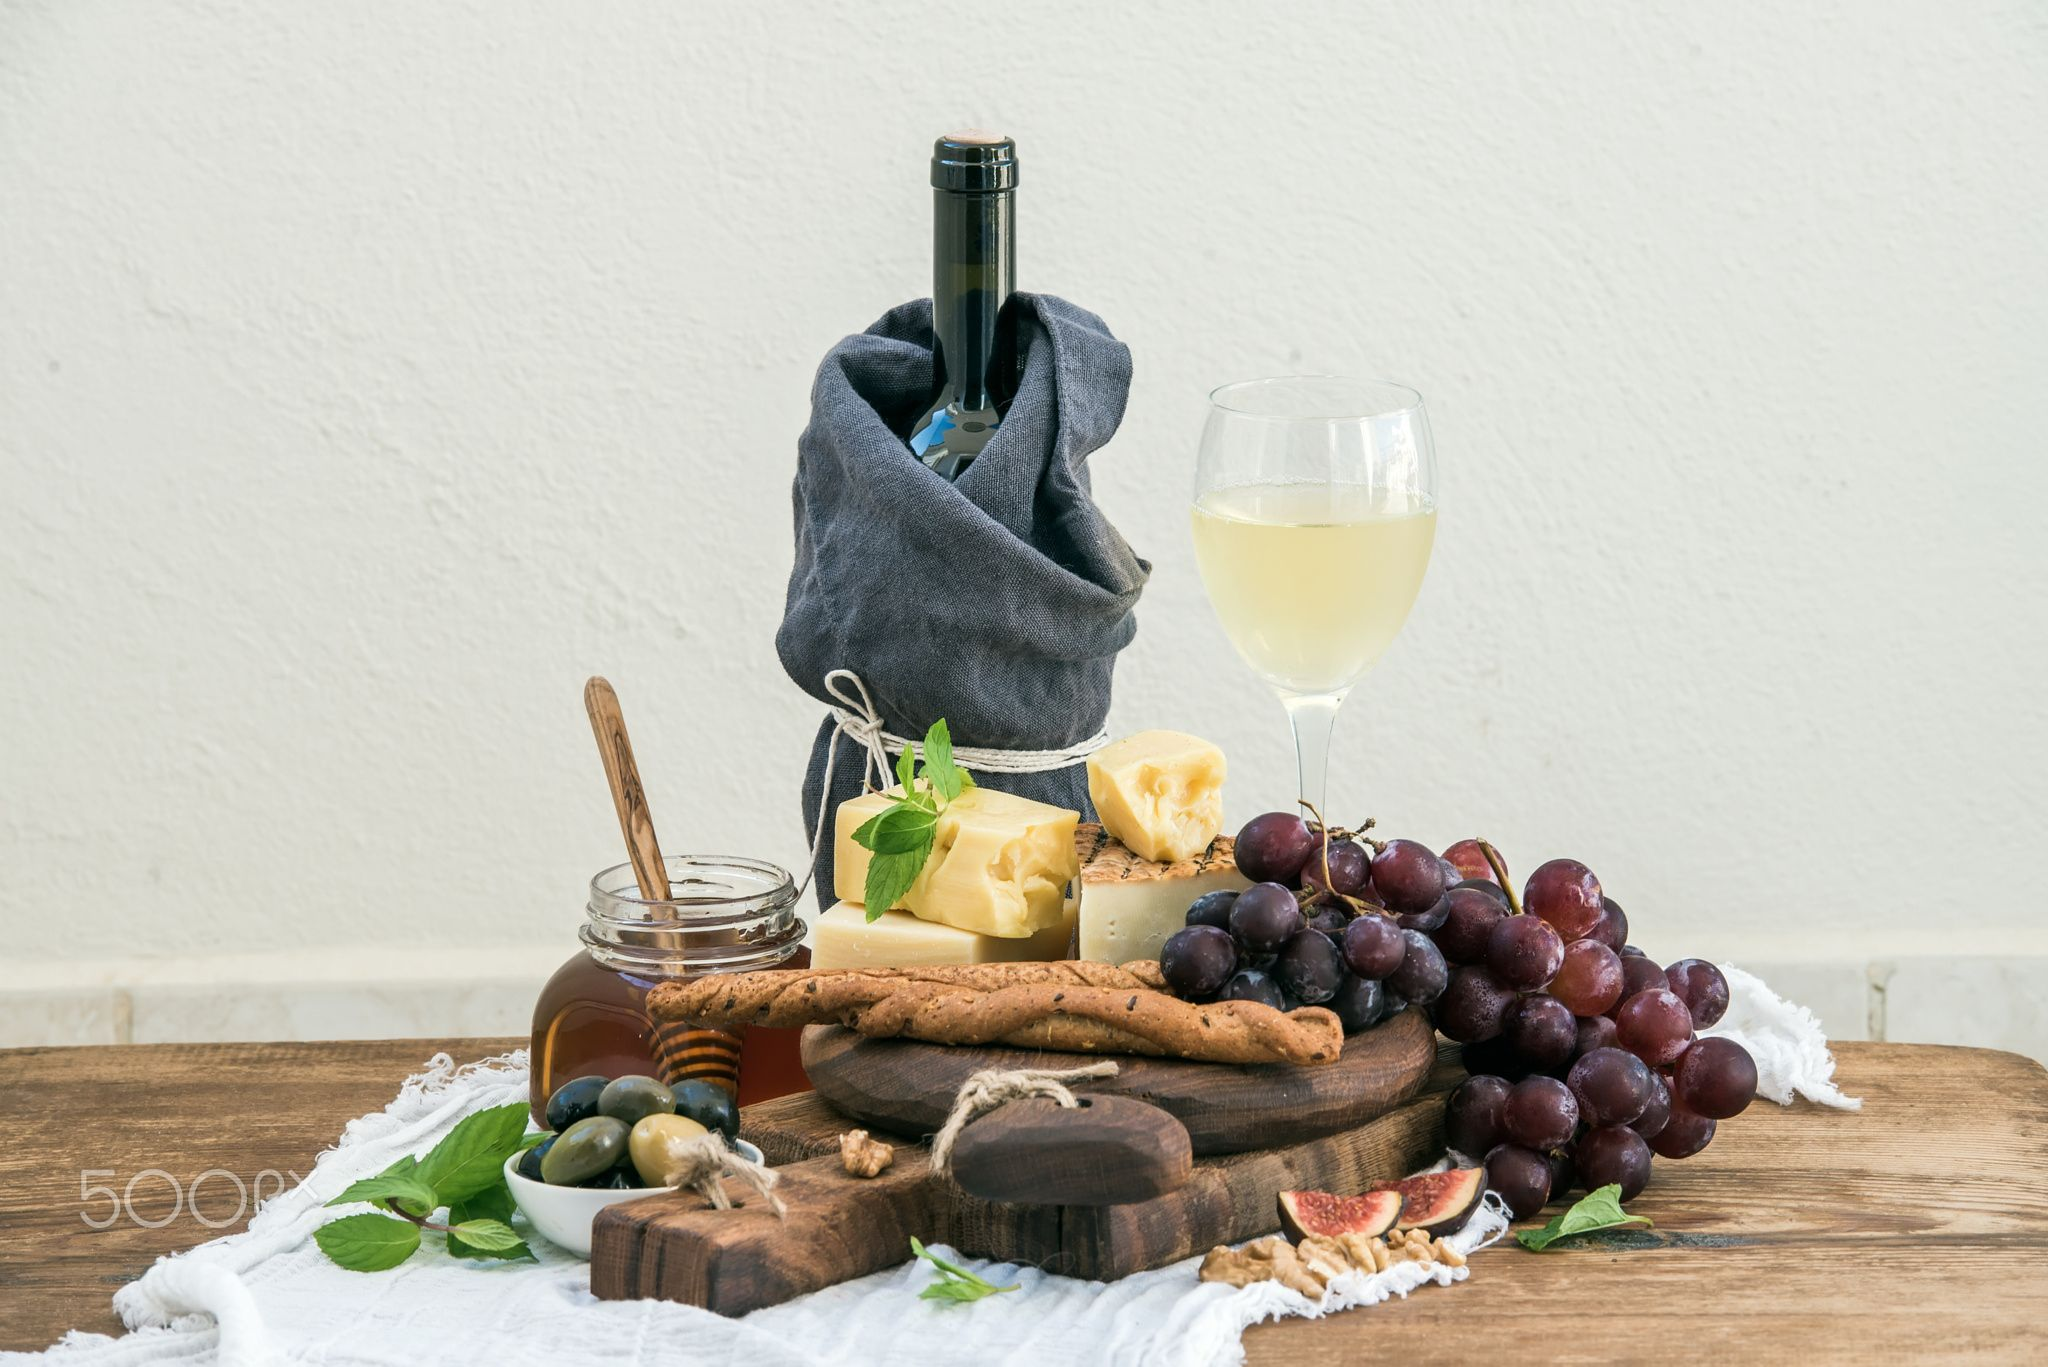 Glass of white wine, cheese board, grapes, fig, strawberries, honey and bread sticks  on rustic wood - Glass of white wine, cheese board, grapes,fig, strawberries, honey and bread sticks  on rustic wooden table, light background, selective focus